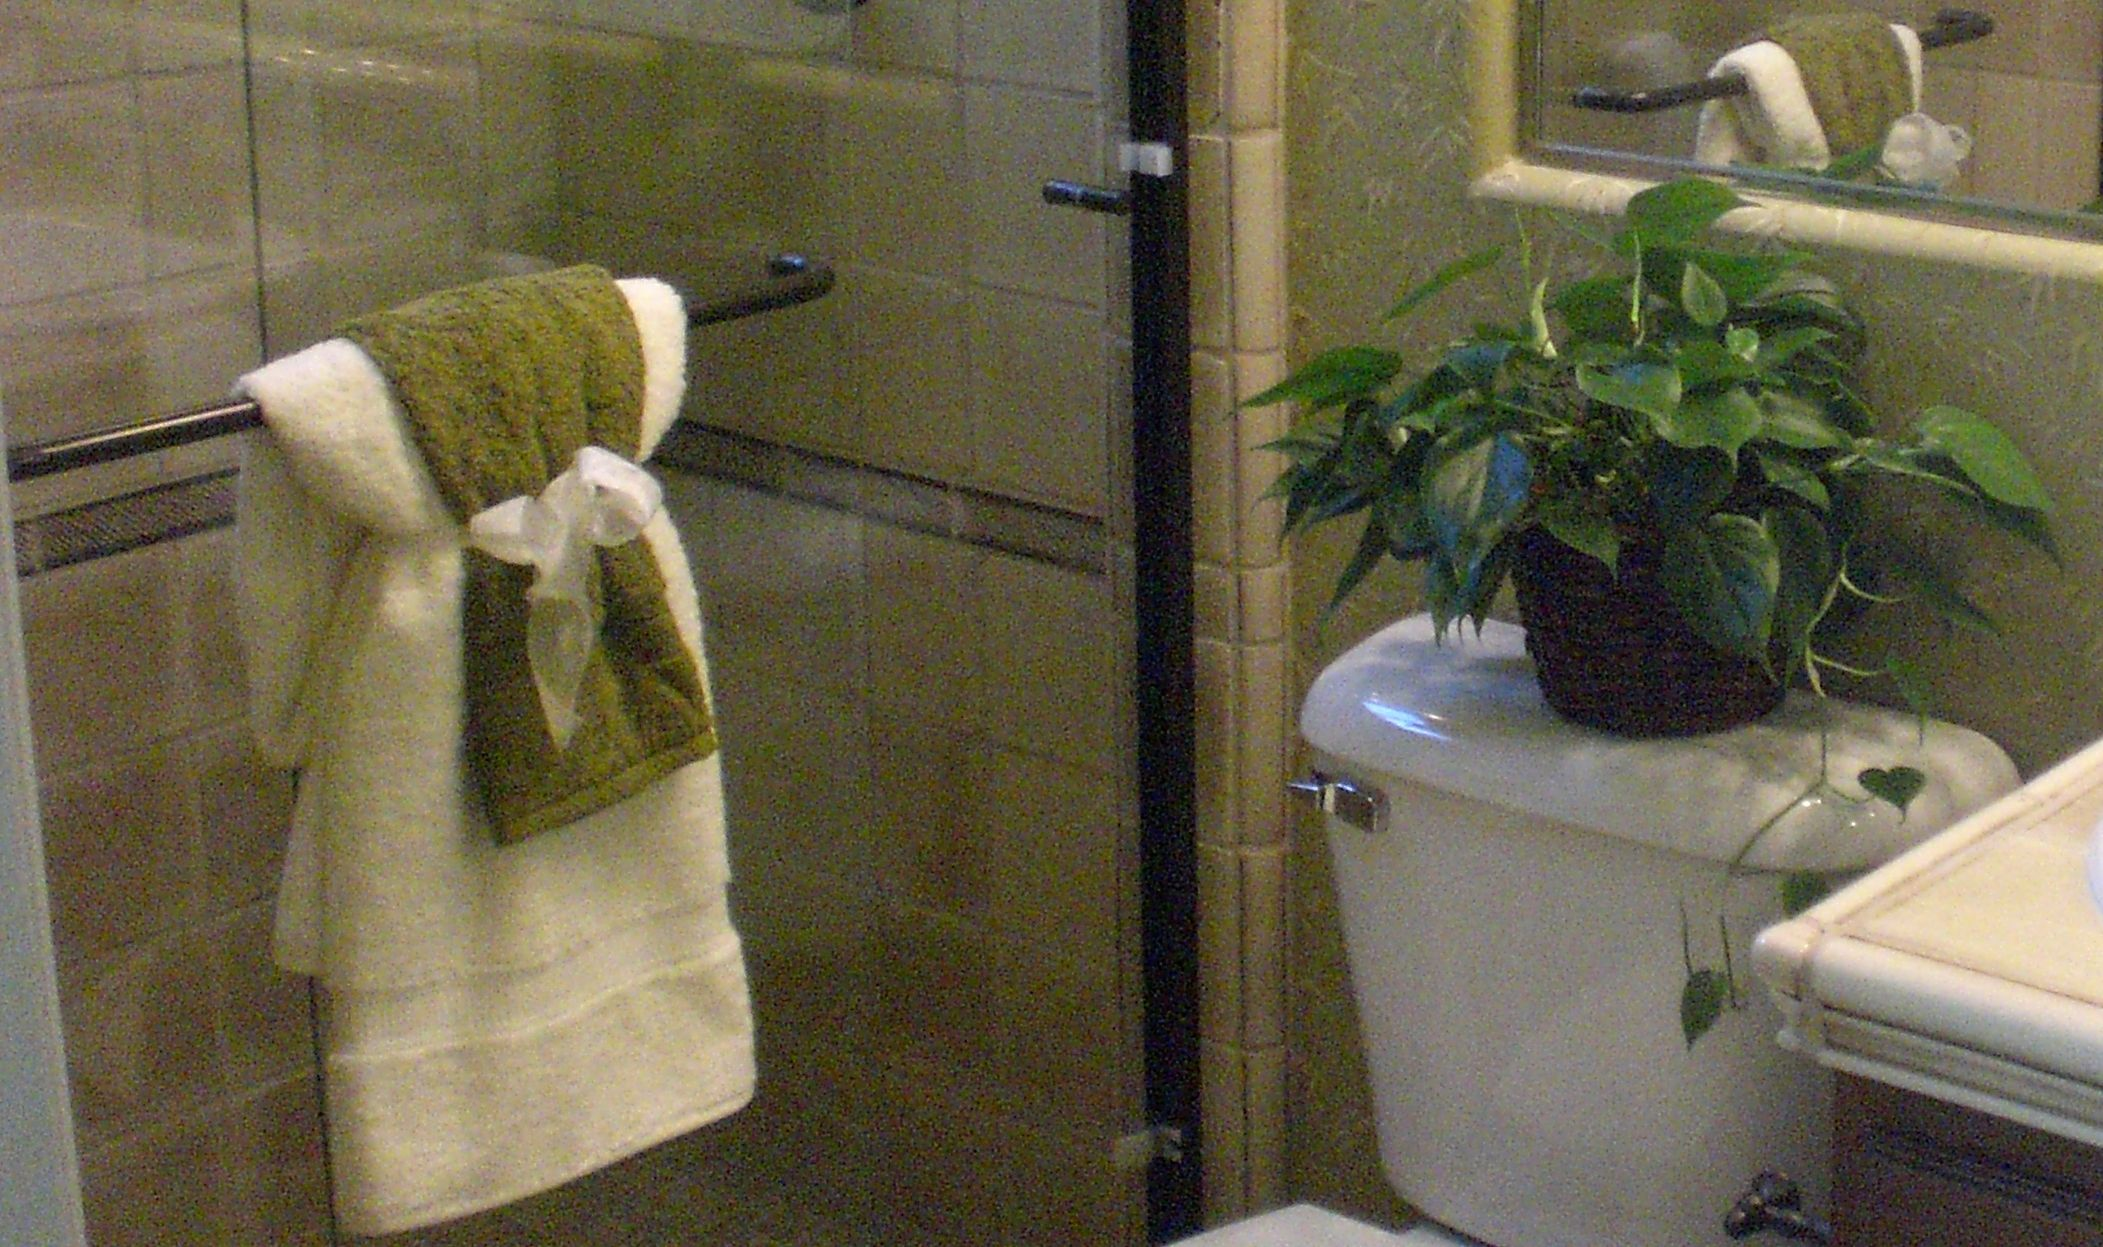 Towel Decorations Everyday Items Towels And Bathroom - Designer towels sale for small bathroom ideas